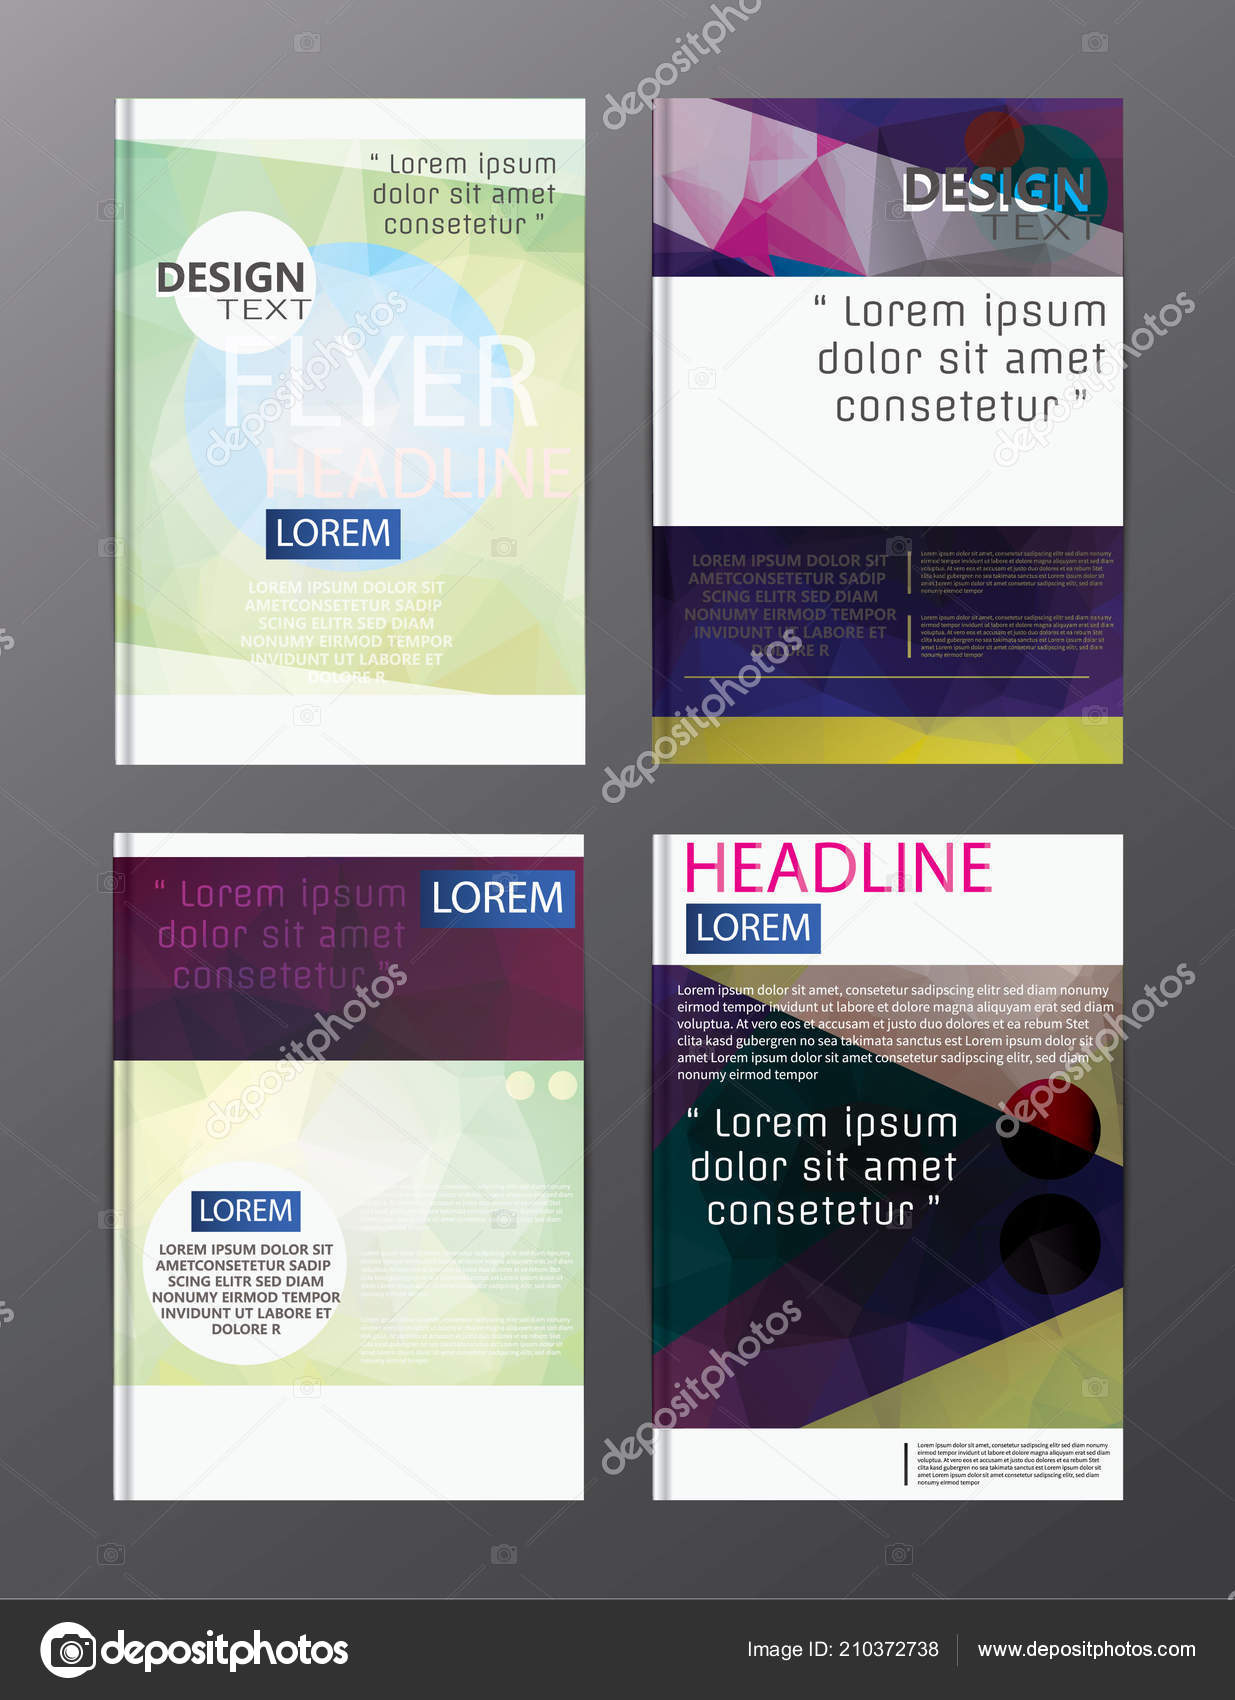 Flyer design business annual report brochure template cover flyer design business annual report brochure template cover presentation abstract stock vector accmission Image collections